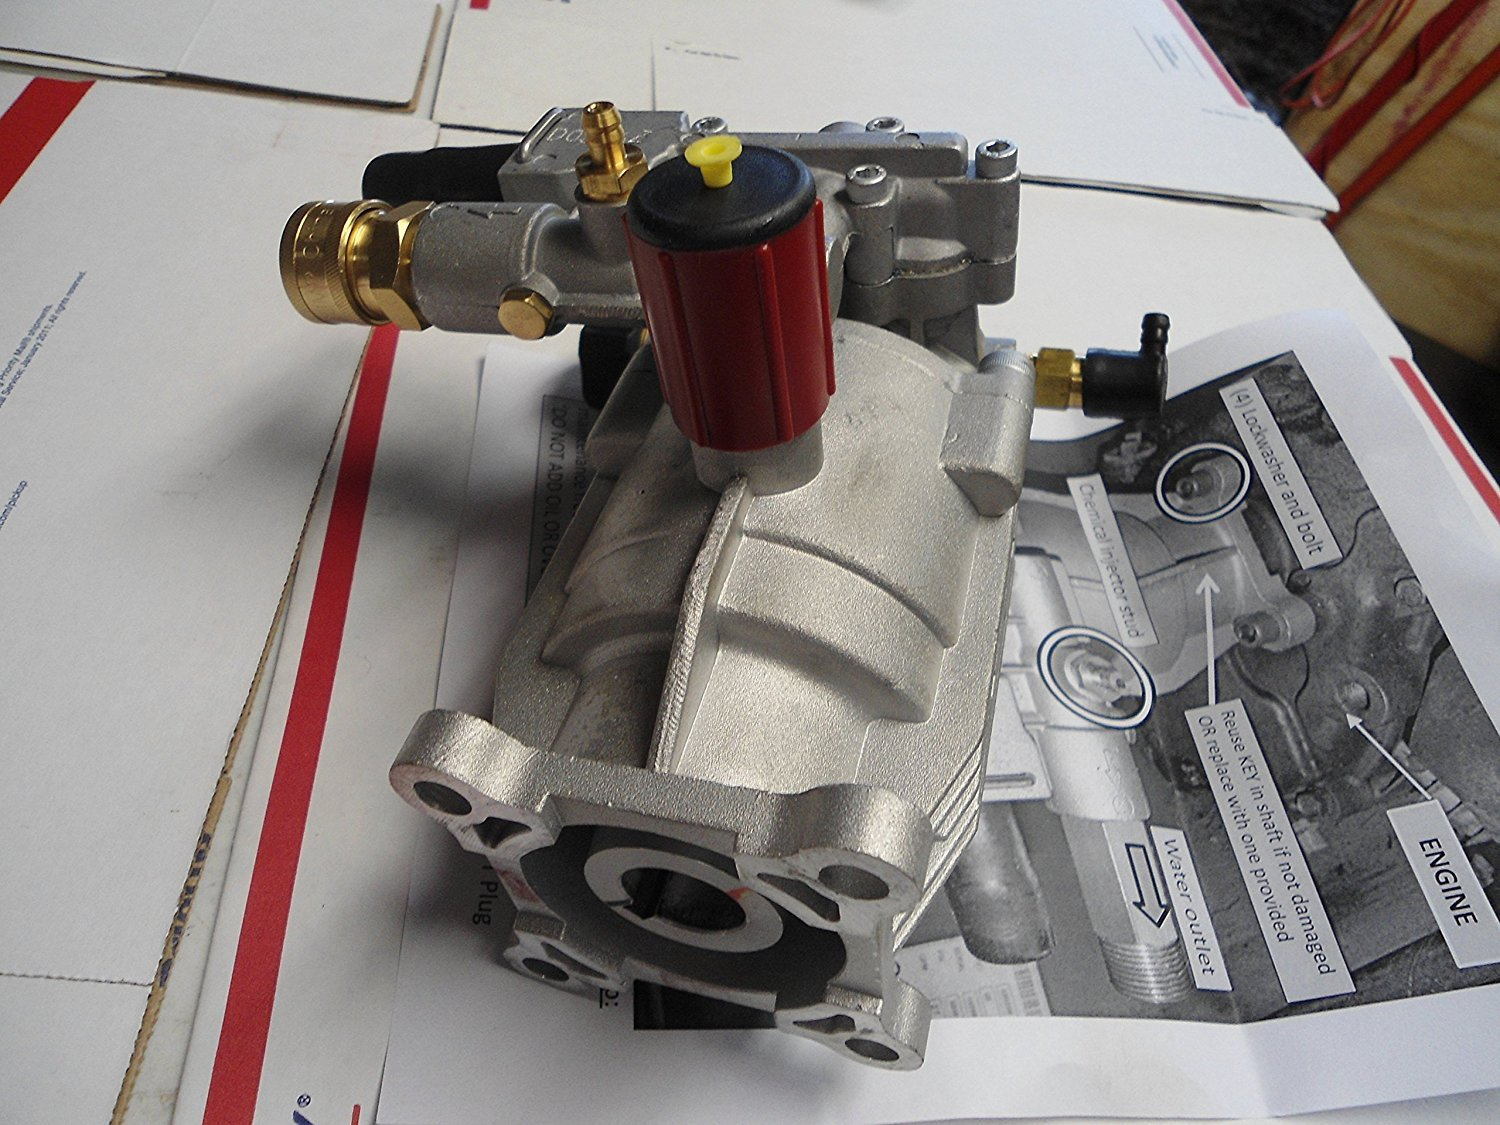 New PRESSURE WASHER PUMP fits Honda Excell XR2500 XR2600 XC2600 EXHA2425 XR2625 by APW Distributing